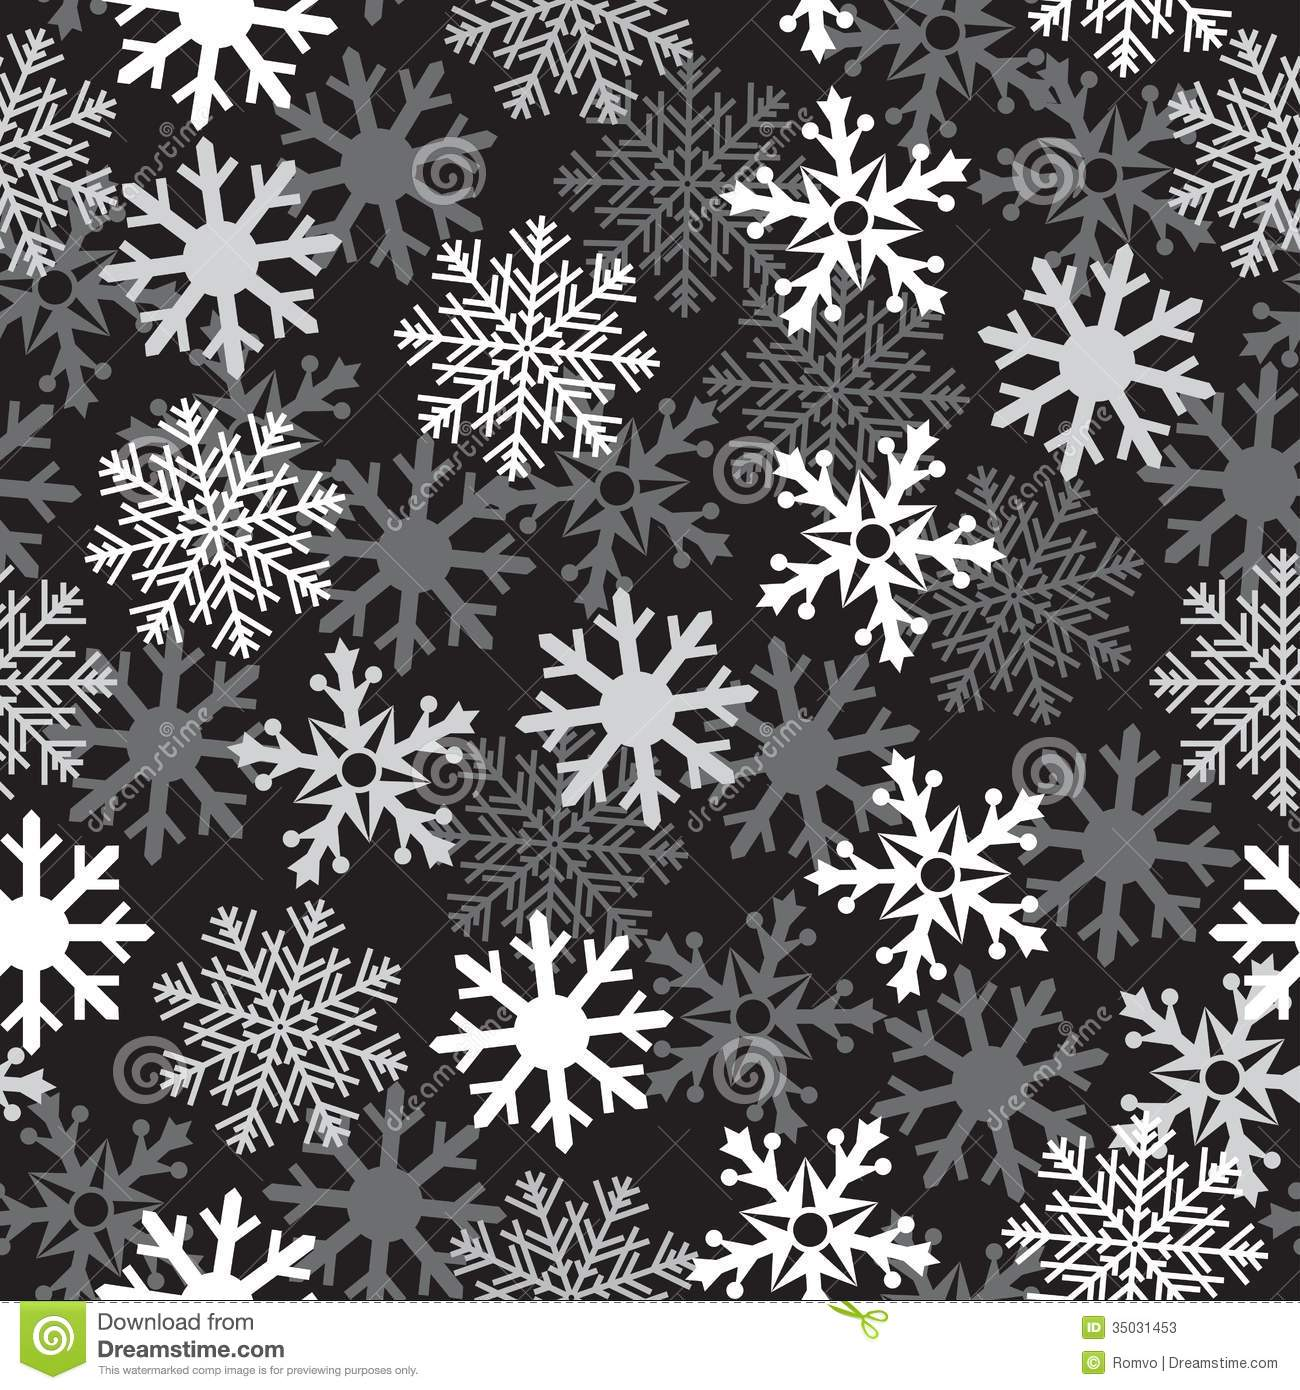 Christmas Wallpaper Snow Falling Snow Black Pattern Stock Vector Image Of Falling